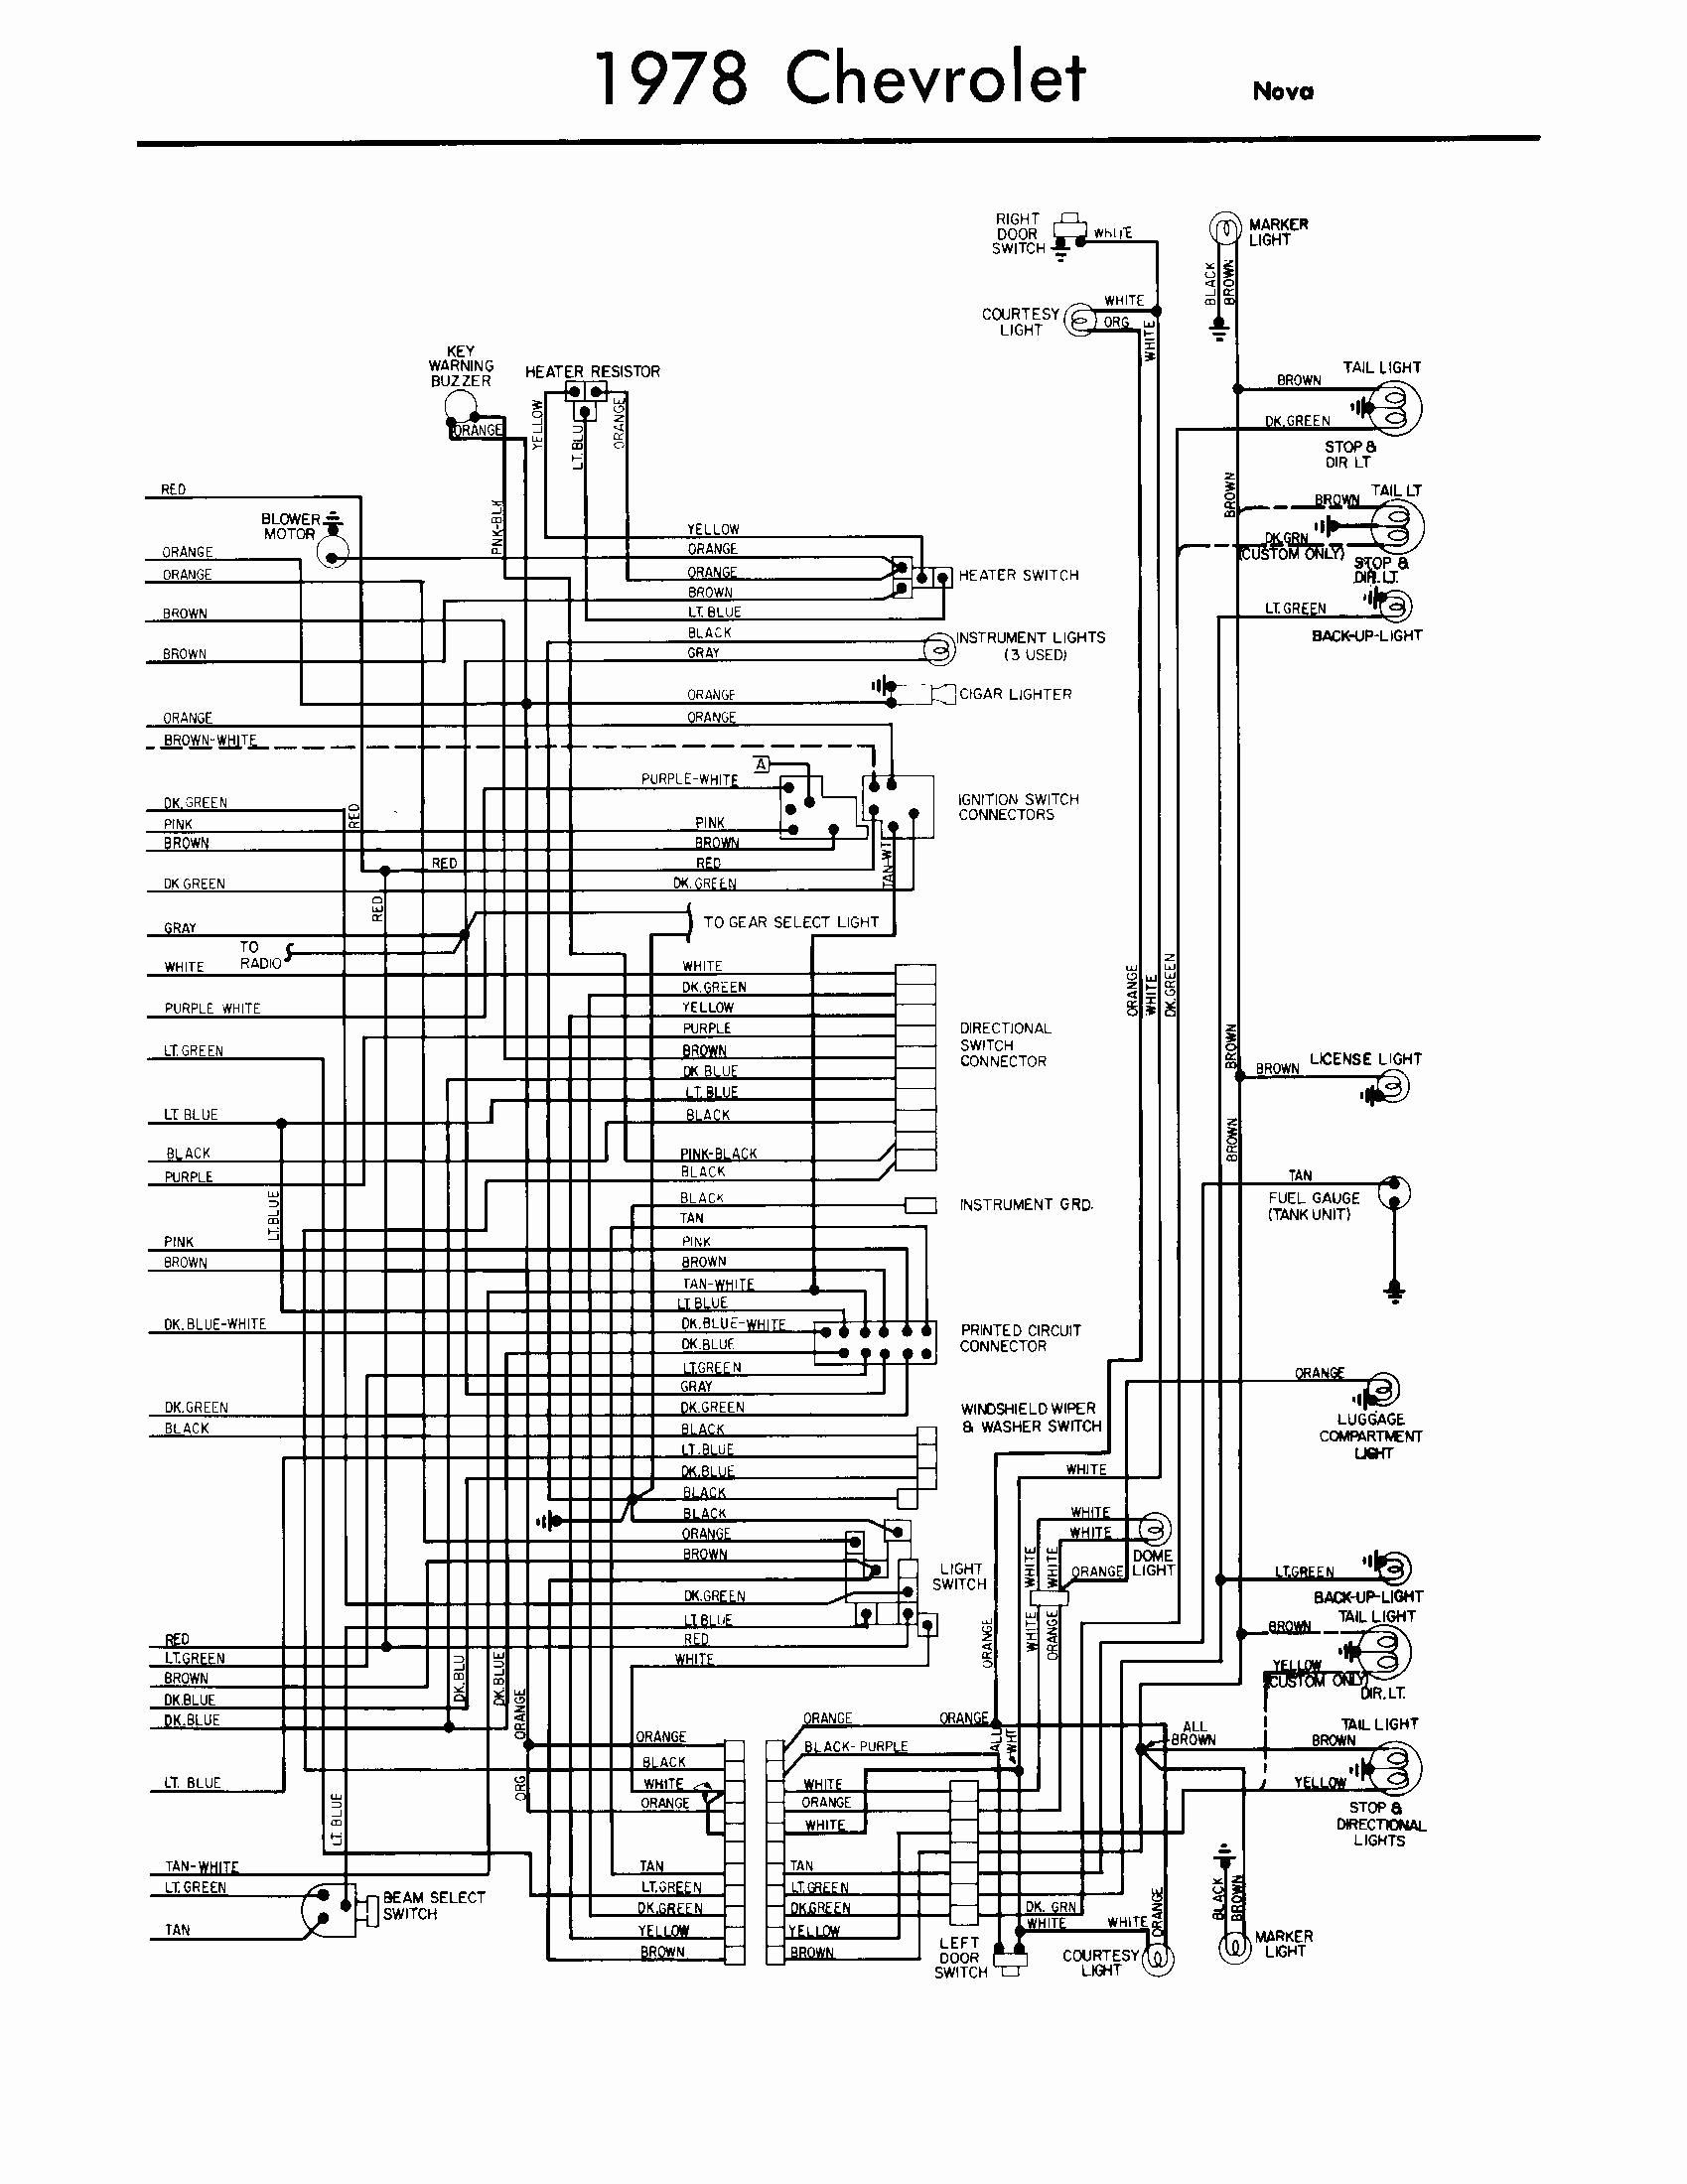 Engineering Drawing Book Download Beautiful 82 Corvette Fuse Panel Diagram  Free Download | Chevy trucks, Electrical wiring diagram, Chevy | 1981 Chevy Silverado Wiring Harness |  | Pinterest